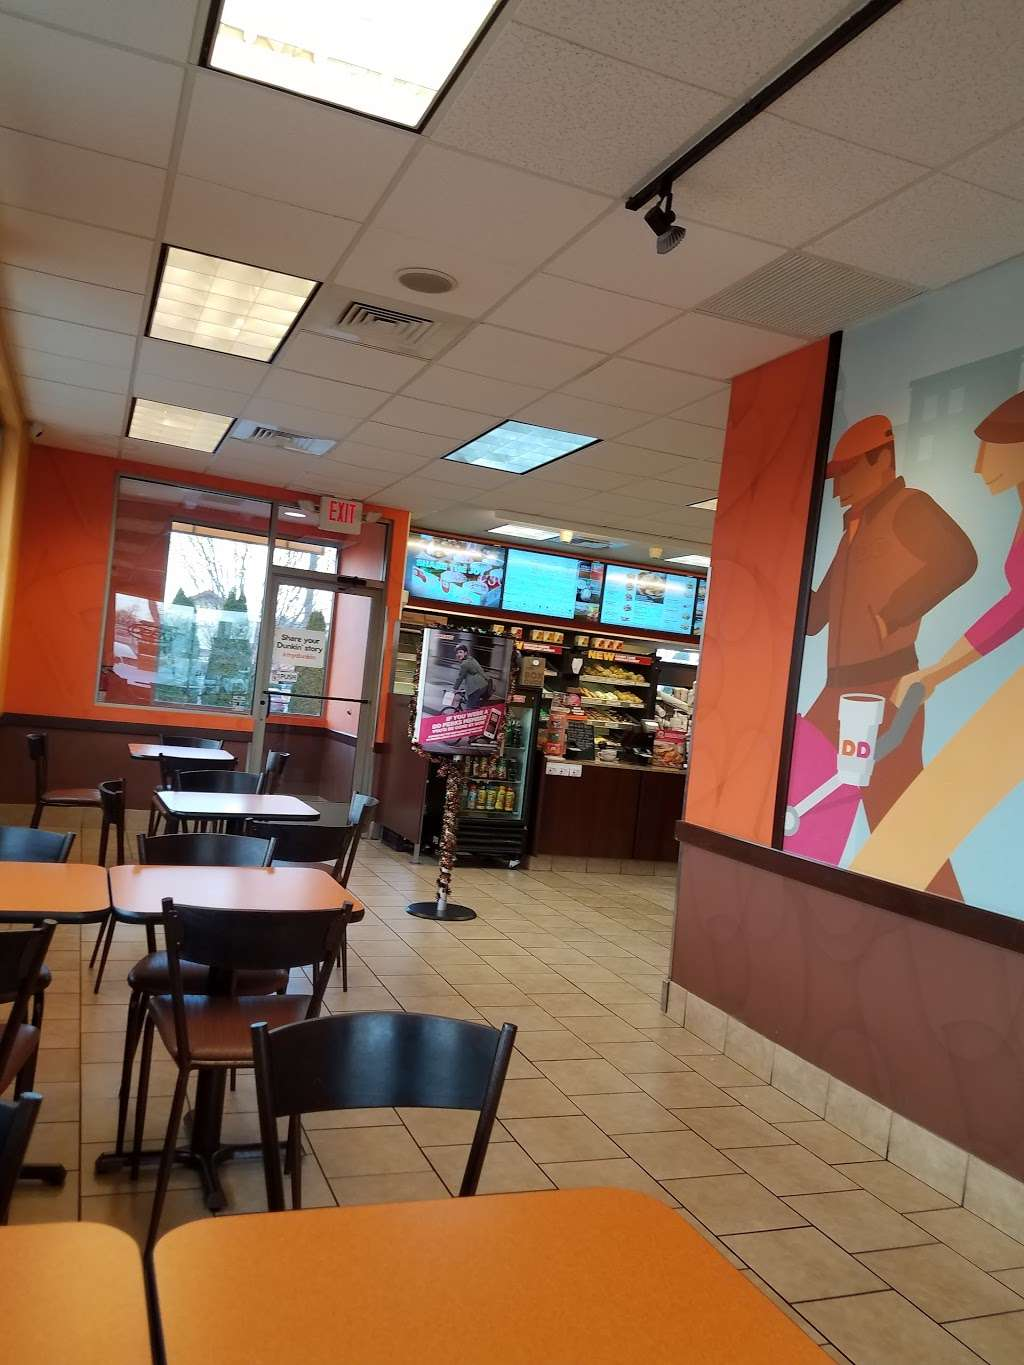 Dunkin Donuts - cafe    Photo 5 of 10   Address: 421 N Broadway, Pennsville, NJ 08070, USA   Phone: (856) 299-2035